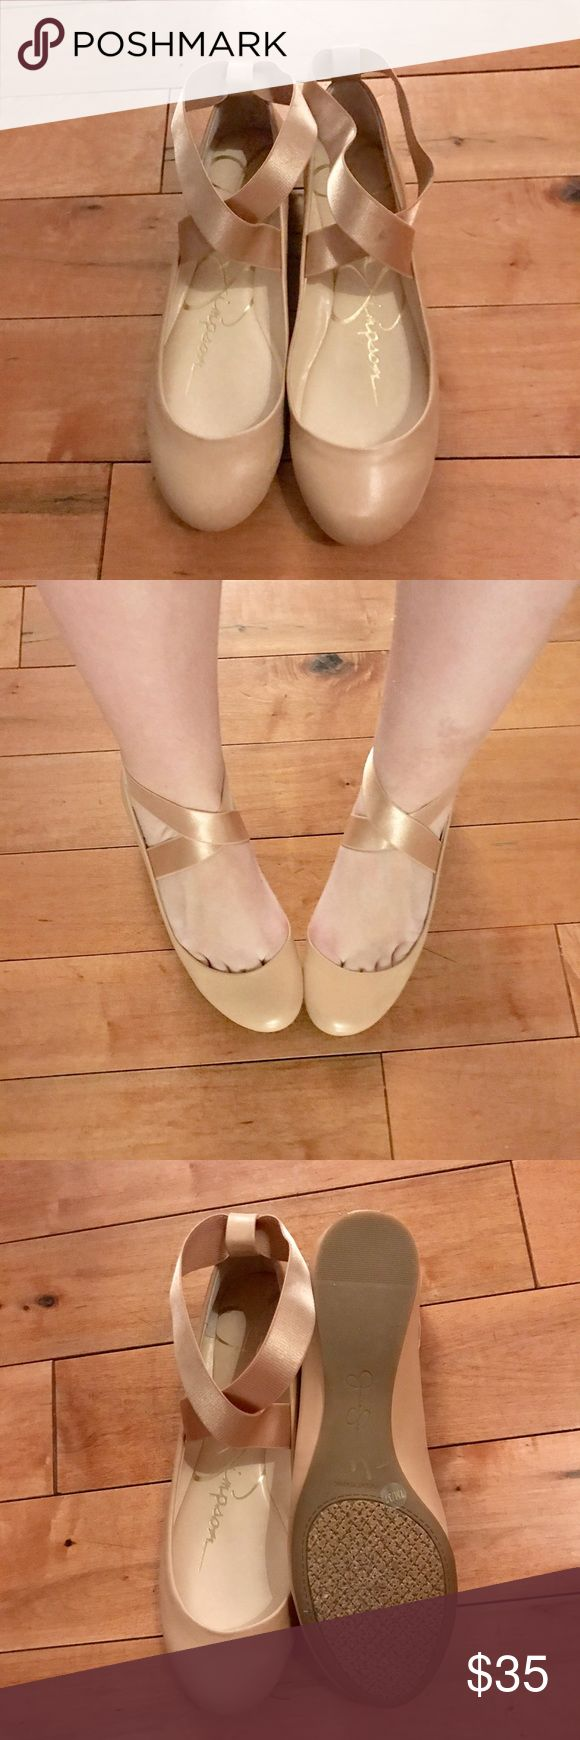 Jessica Simpson ballet flats Jessica Simpson ballet blush pink nude  nude elastic band flats ! Has some wear on them but still has a lot of life left to them! Jessica Simpson Shoes Flats & Loafers